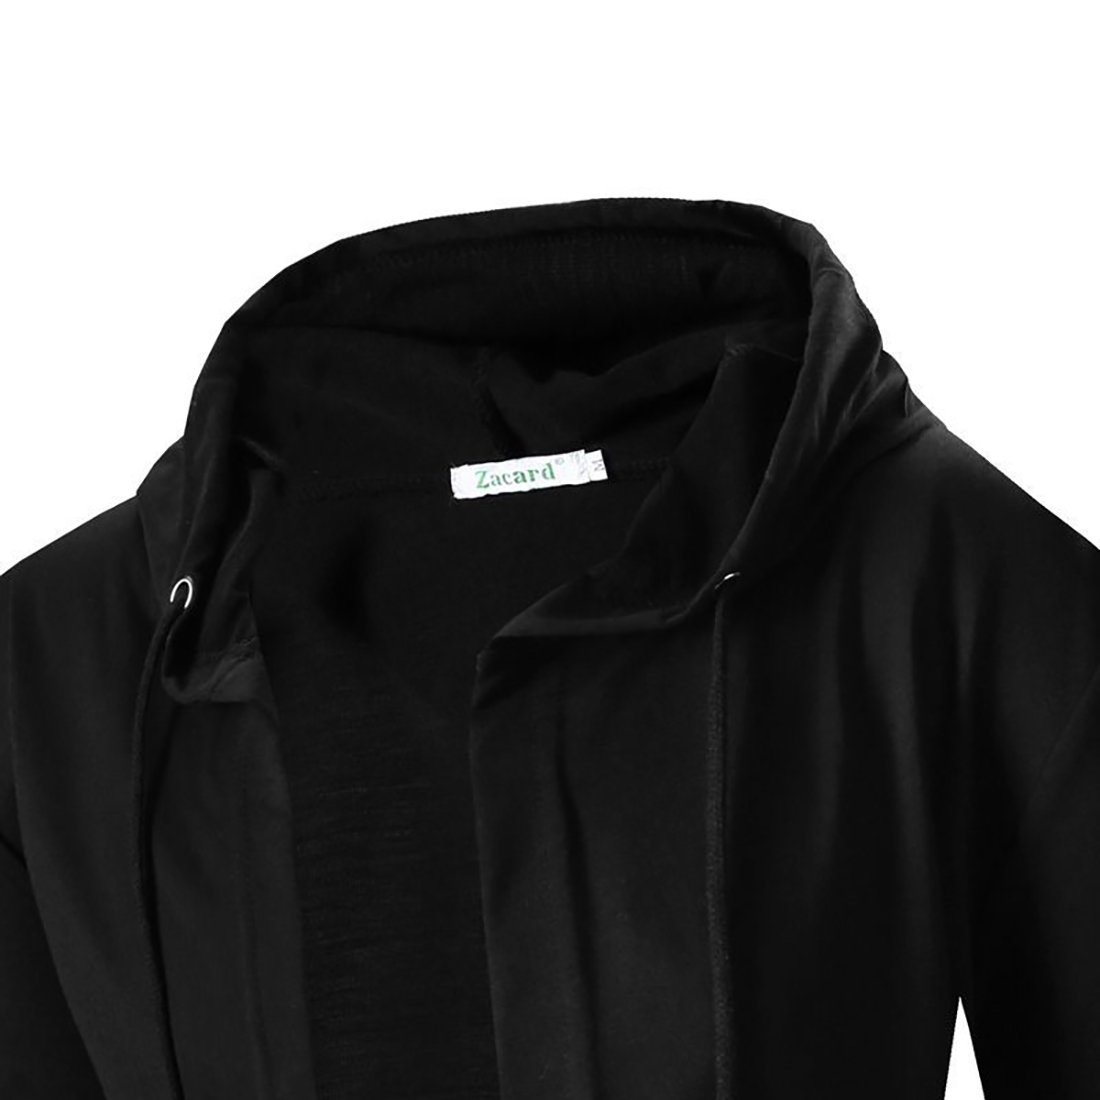 Comeon Men's Black Hooded Cardigan Cool Long Length Large Open Lightweight Cape Cloak Coat Drape Cardigans Hoodie (Black,US XL/Asian 2XL) by Comeon (Image #5)